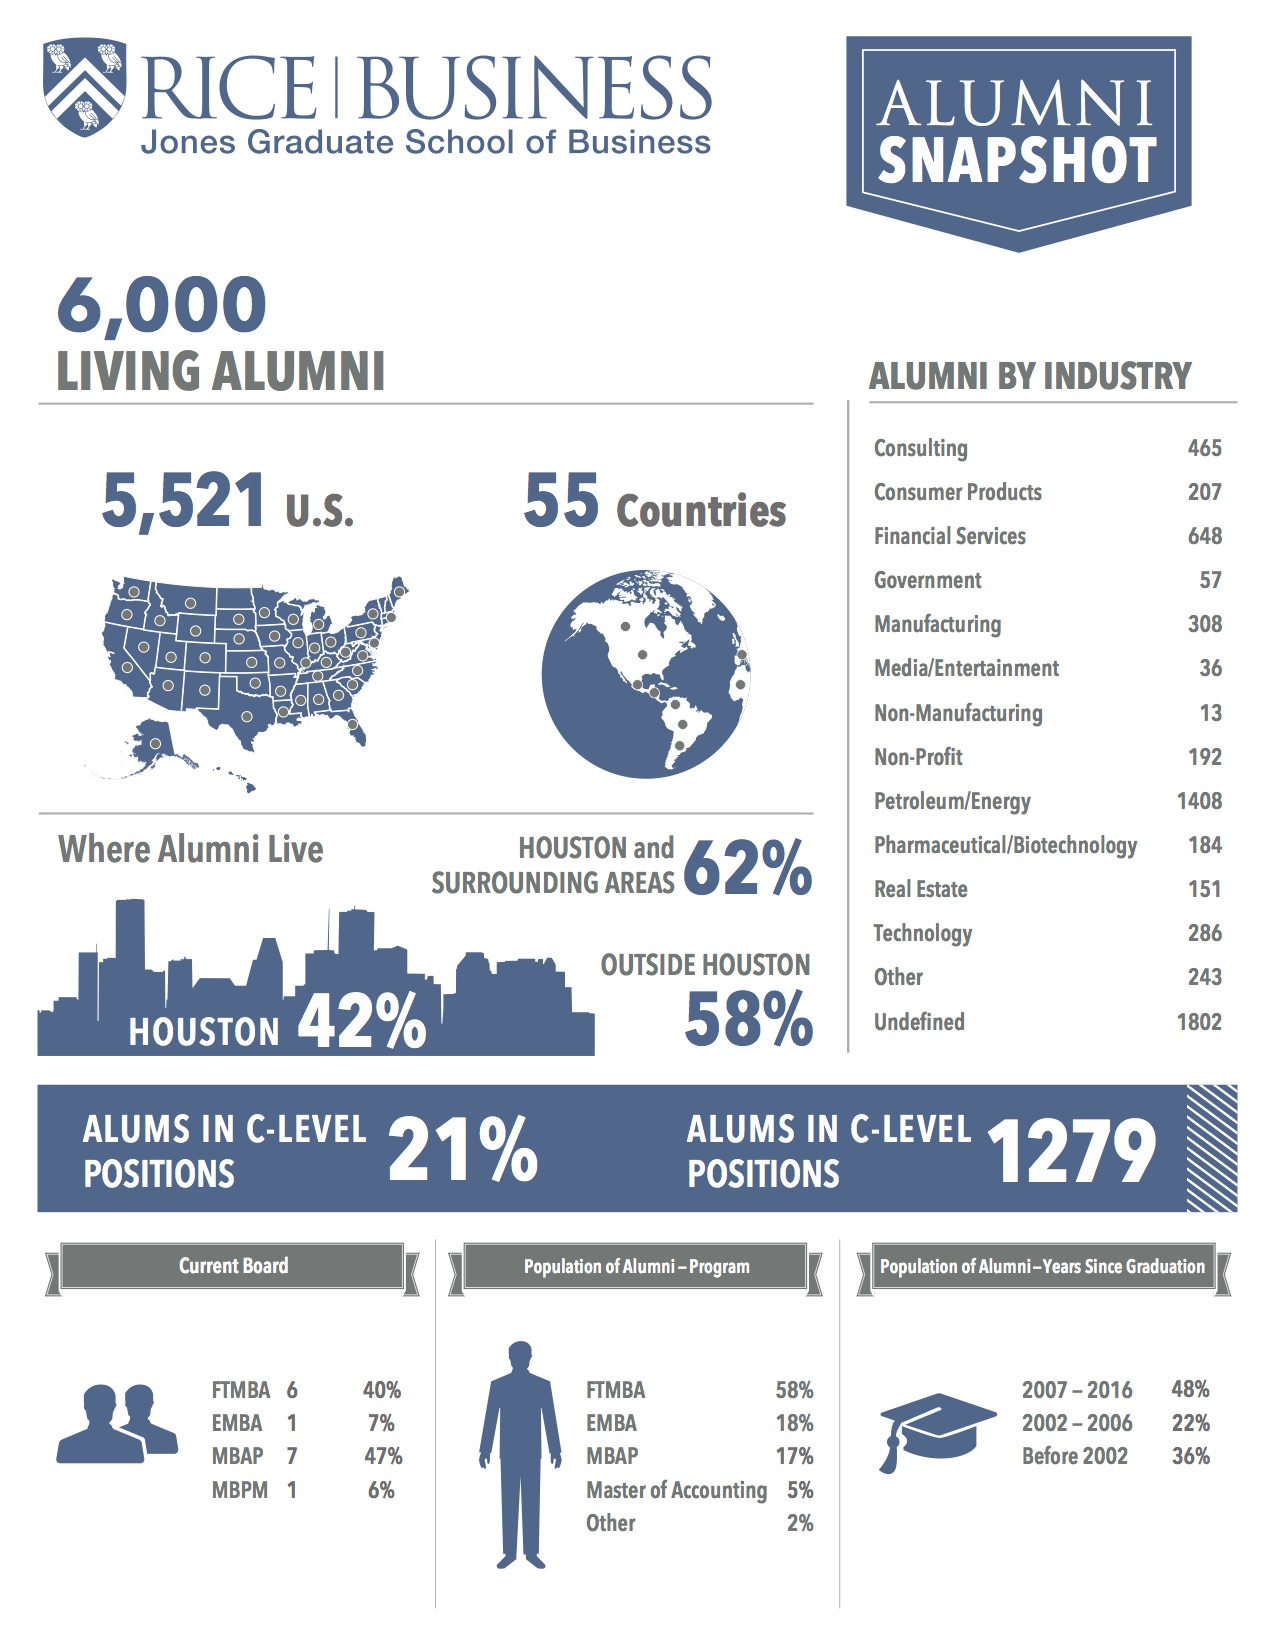 Rice Business Alumni Snapshot